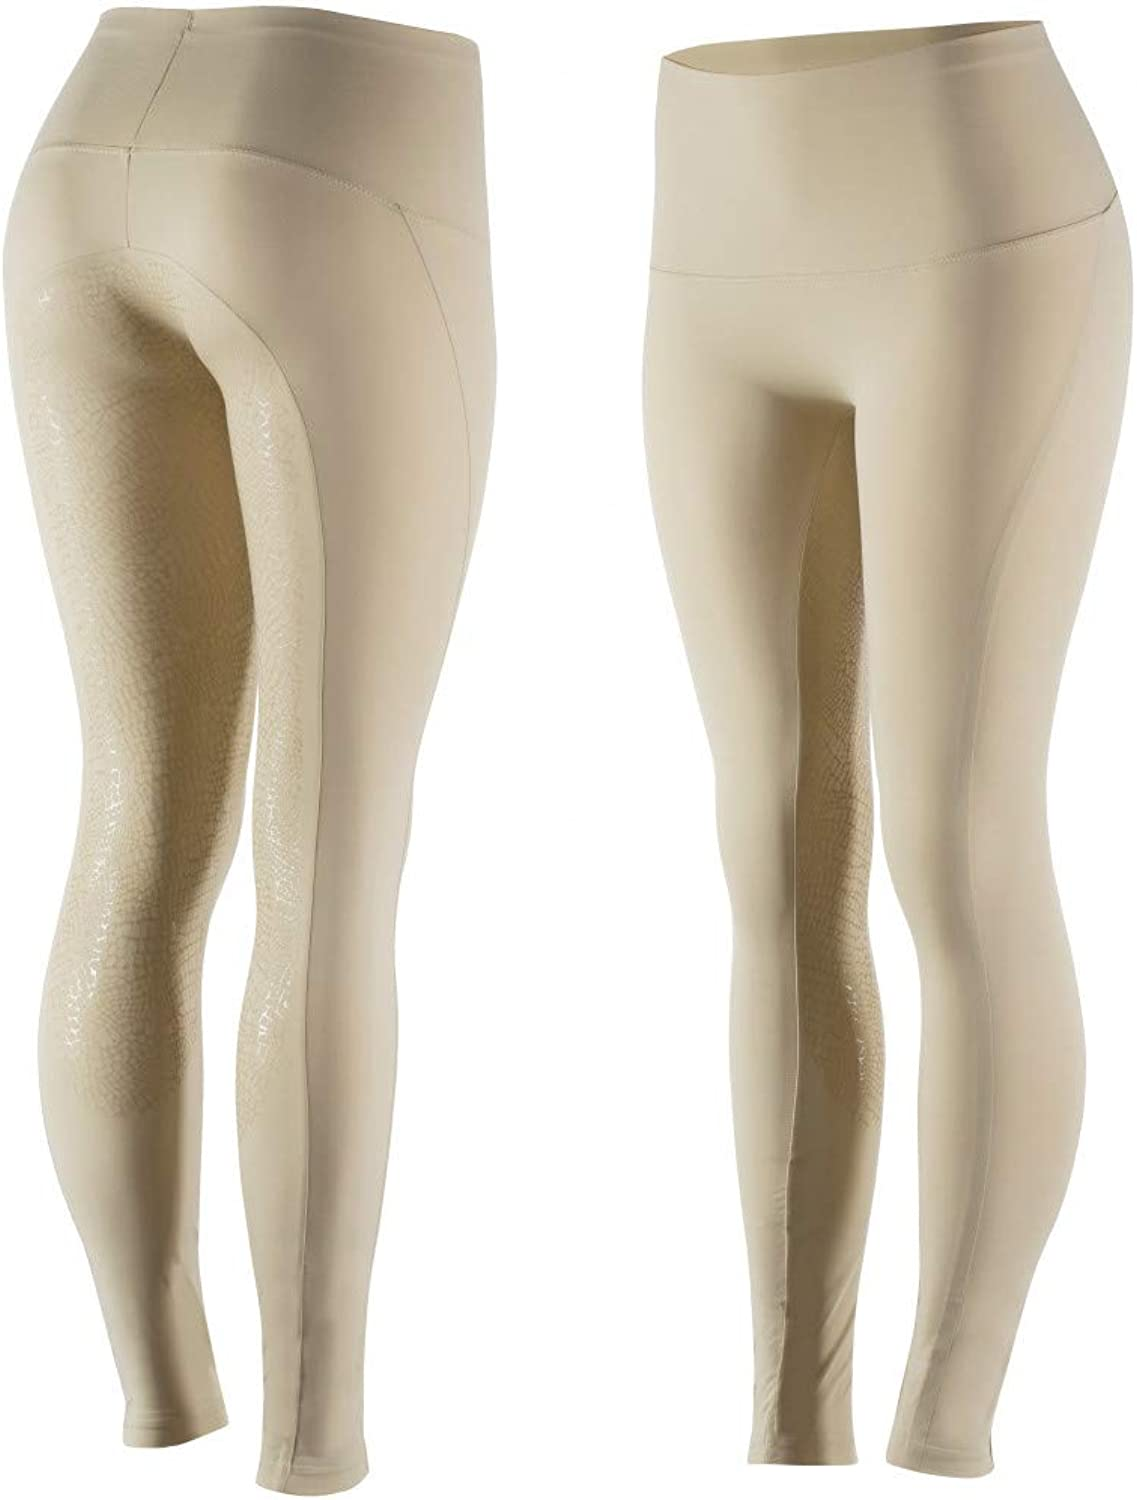 Horze white Women's Silicone FS Tights,